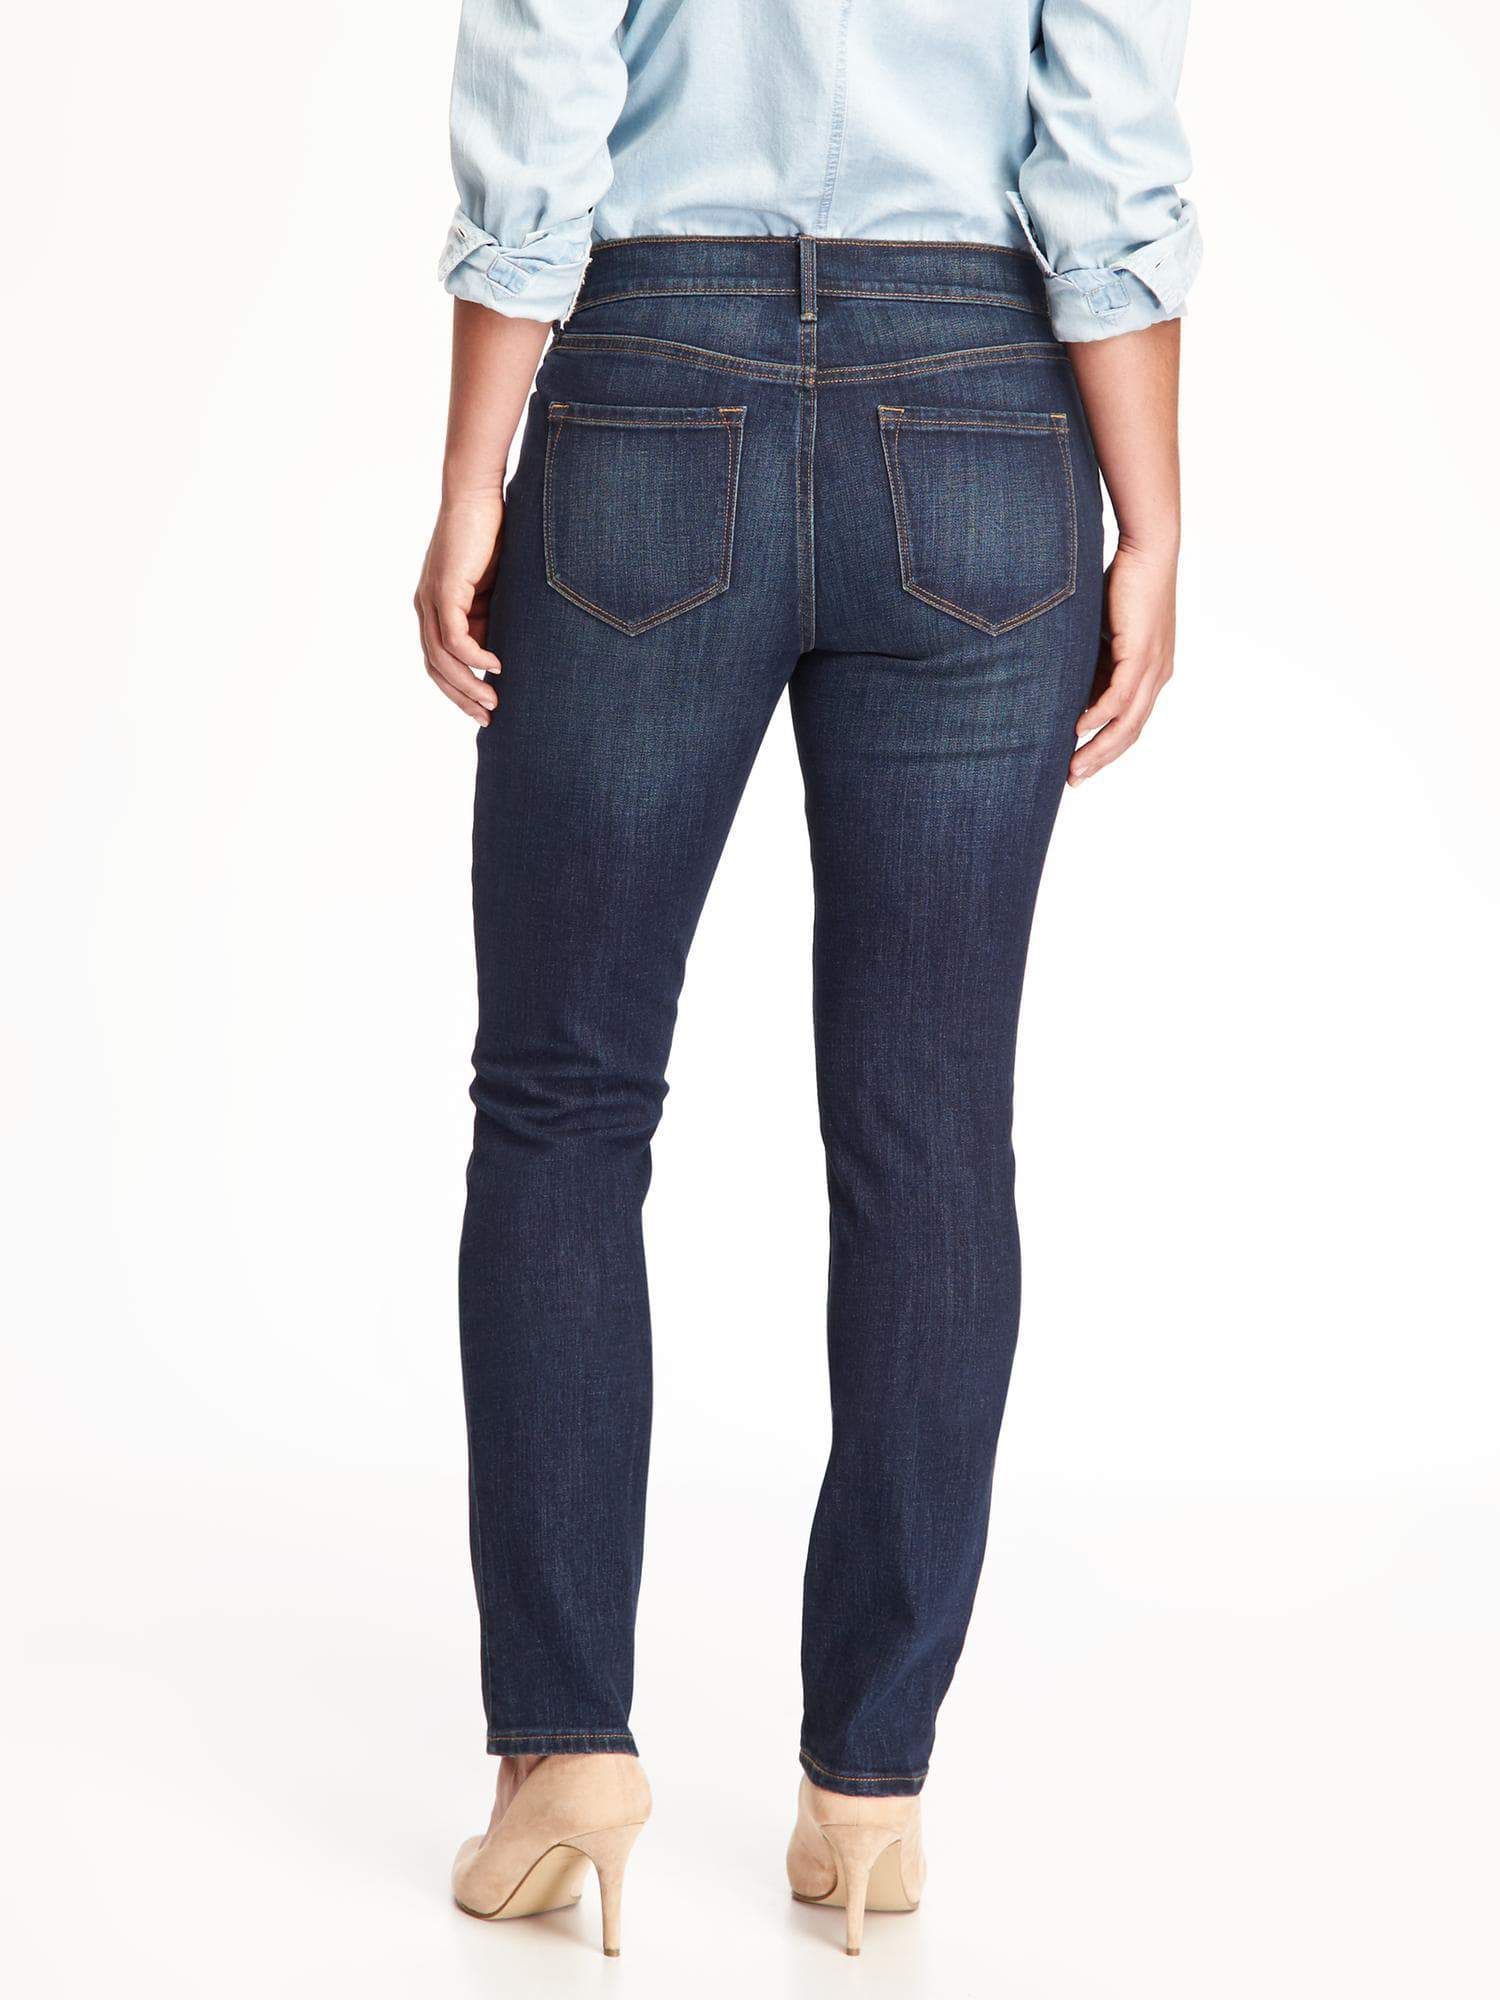 Jeans with back pockets that flatter wide buttocks